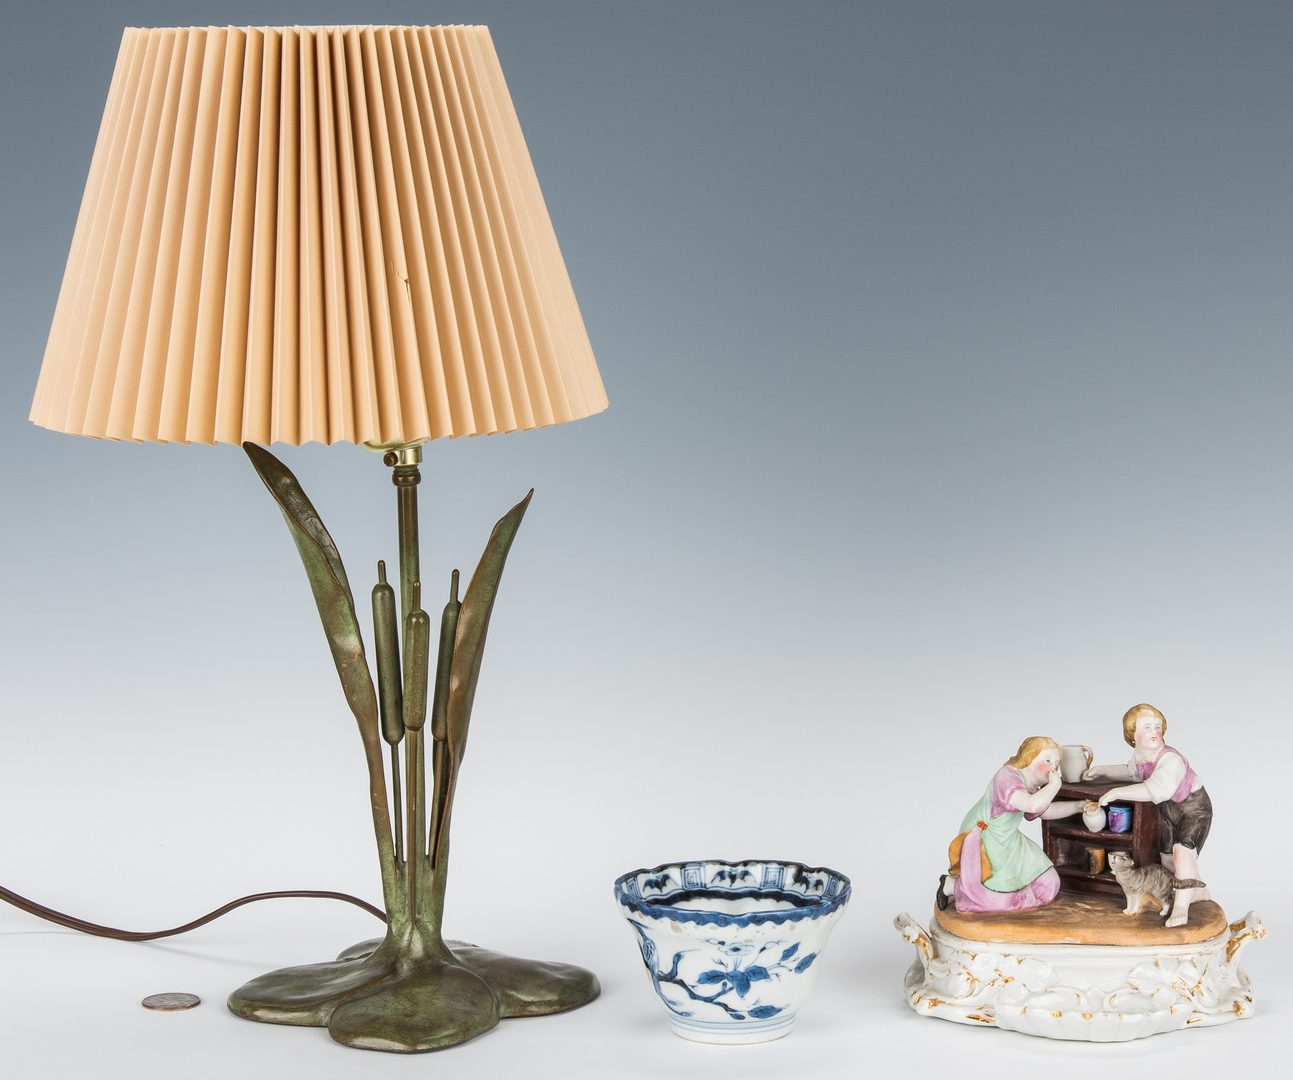 Lot 340: 3 Desk Items, incl. Lamp, Japanese Dish, & Inkwell